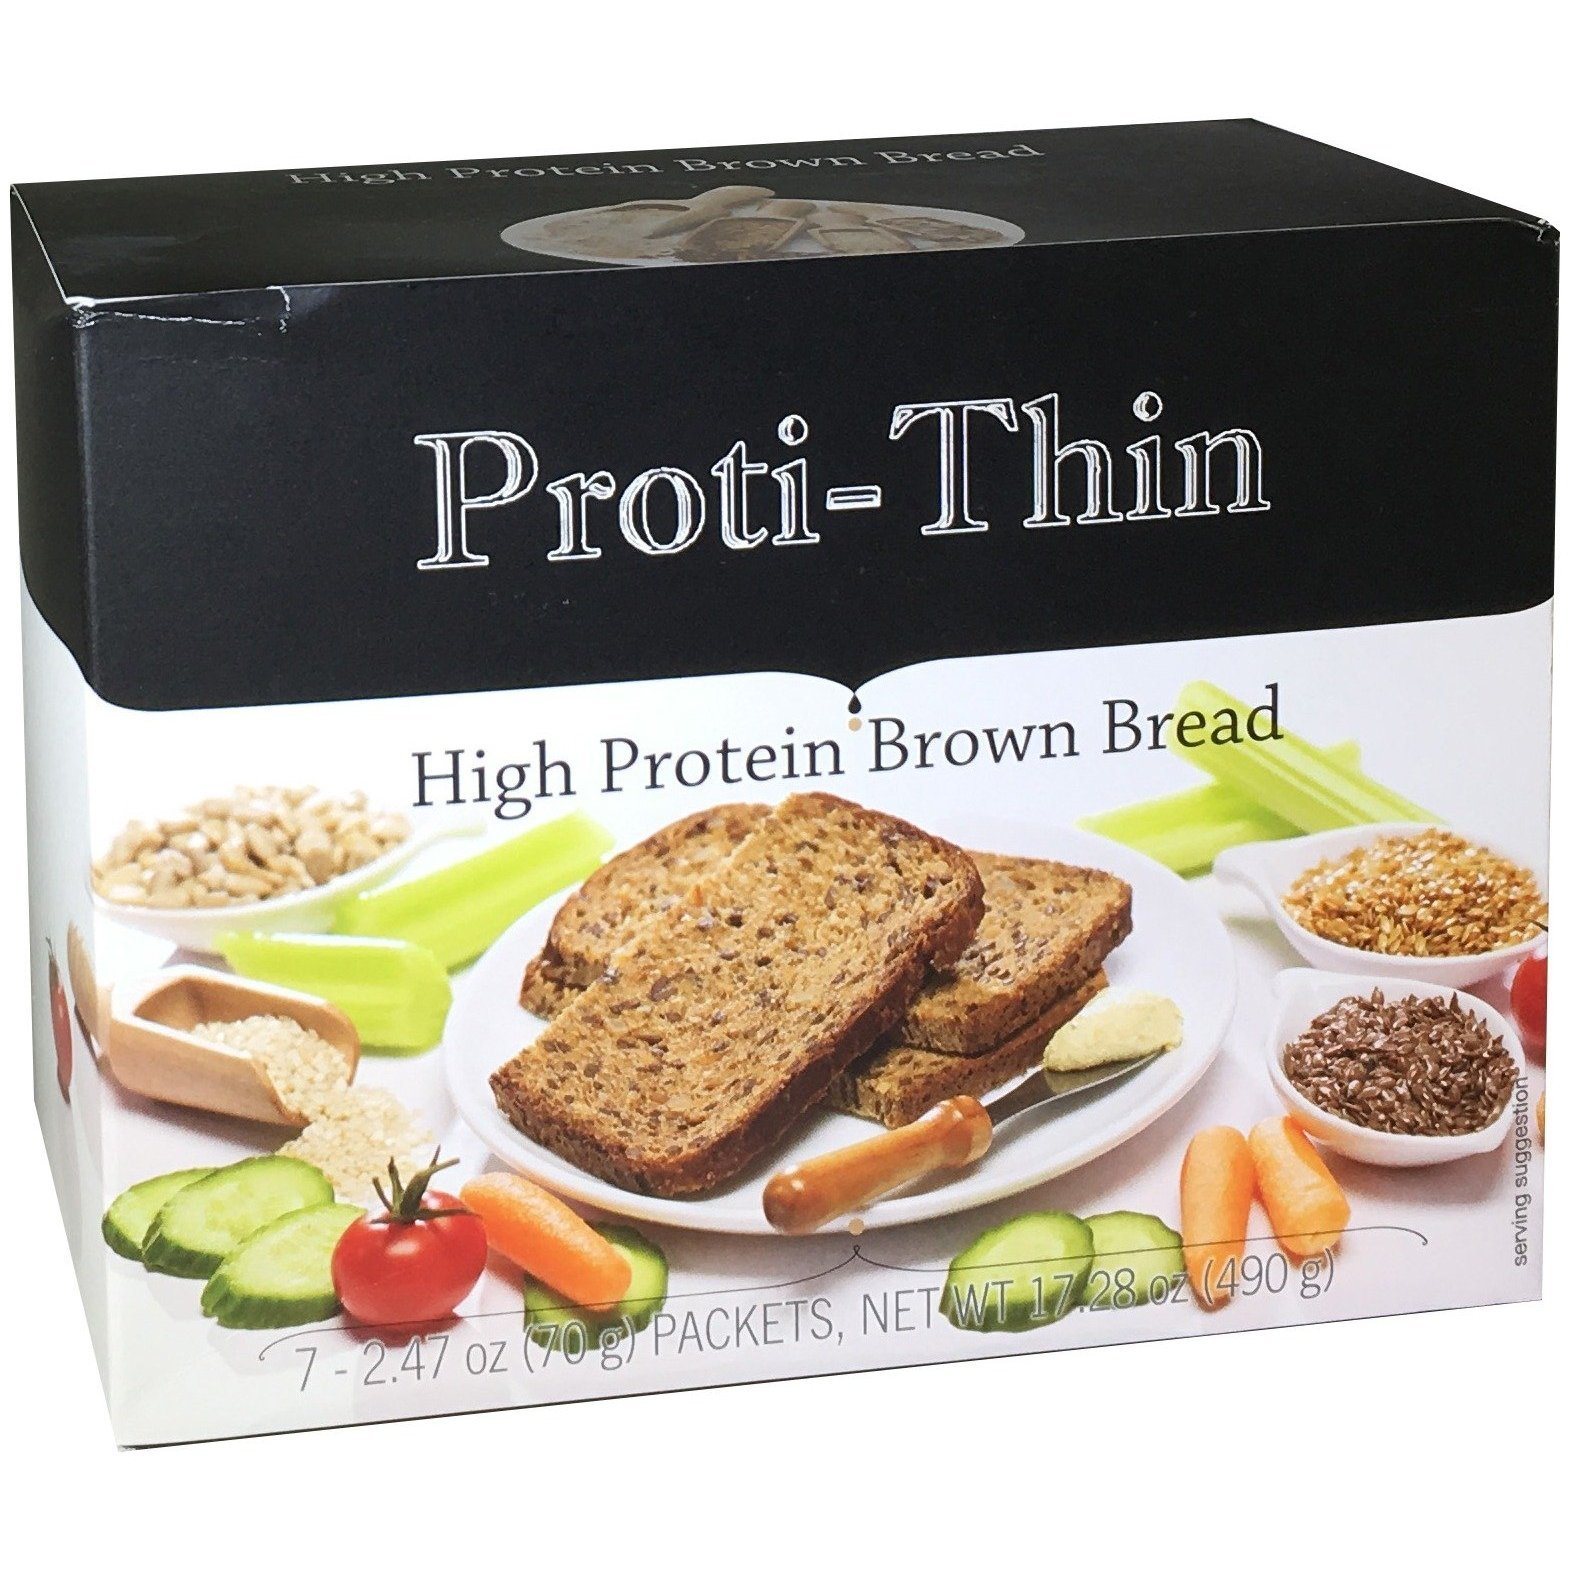 Proti-Thin - High Protein Brown Bread - 15g Protein - High Fiber - Low Net Carb -Diet Bread (7/Box)